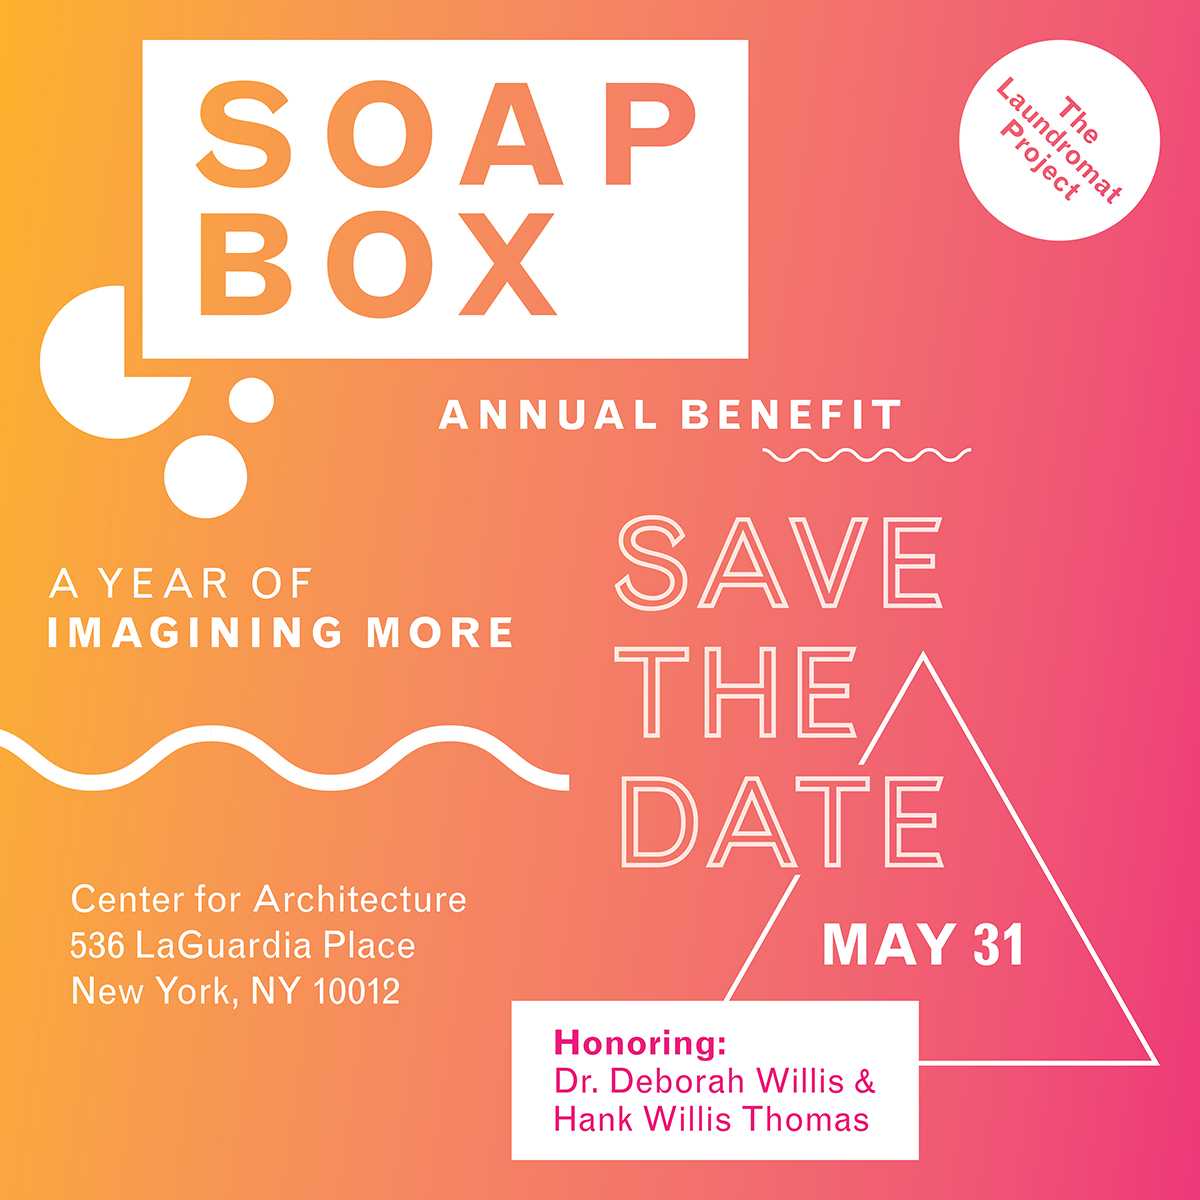 Save the Date! SOAPBOX 2017